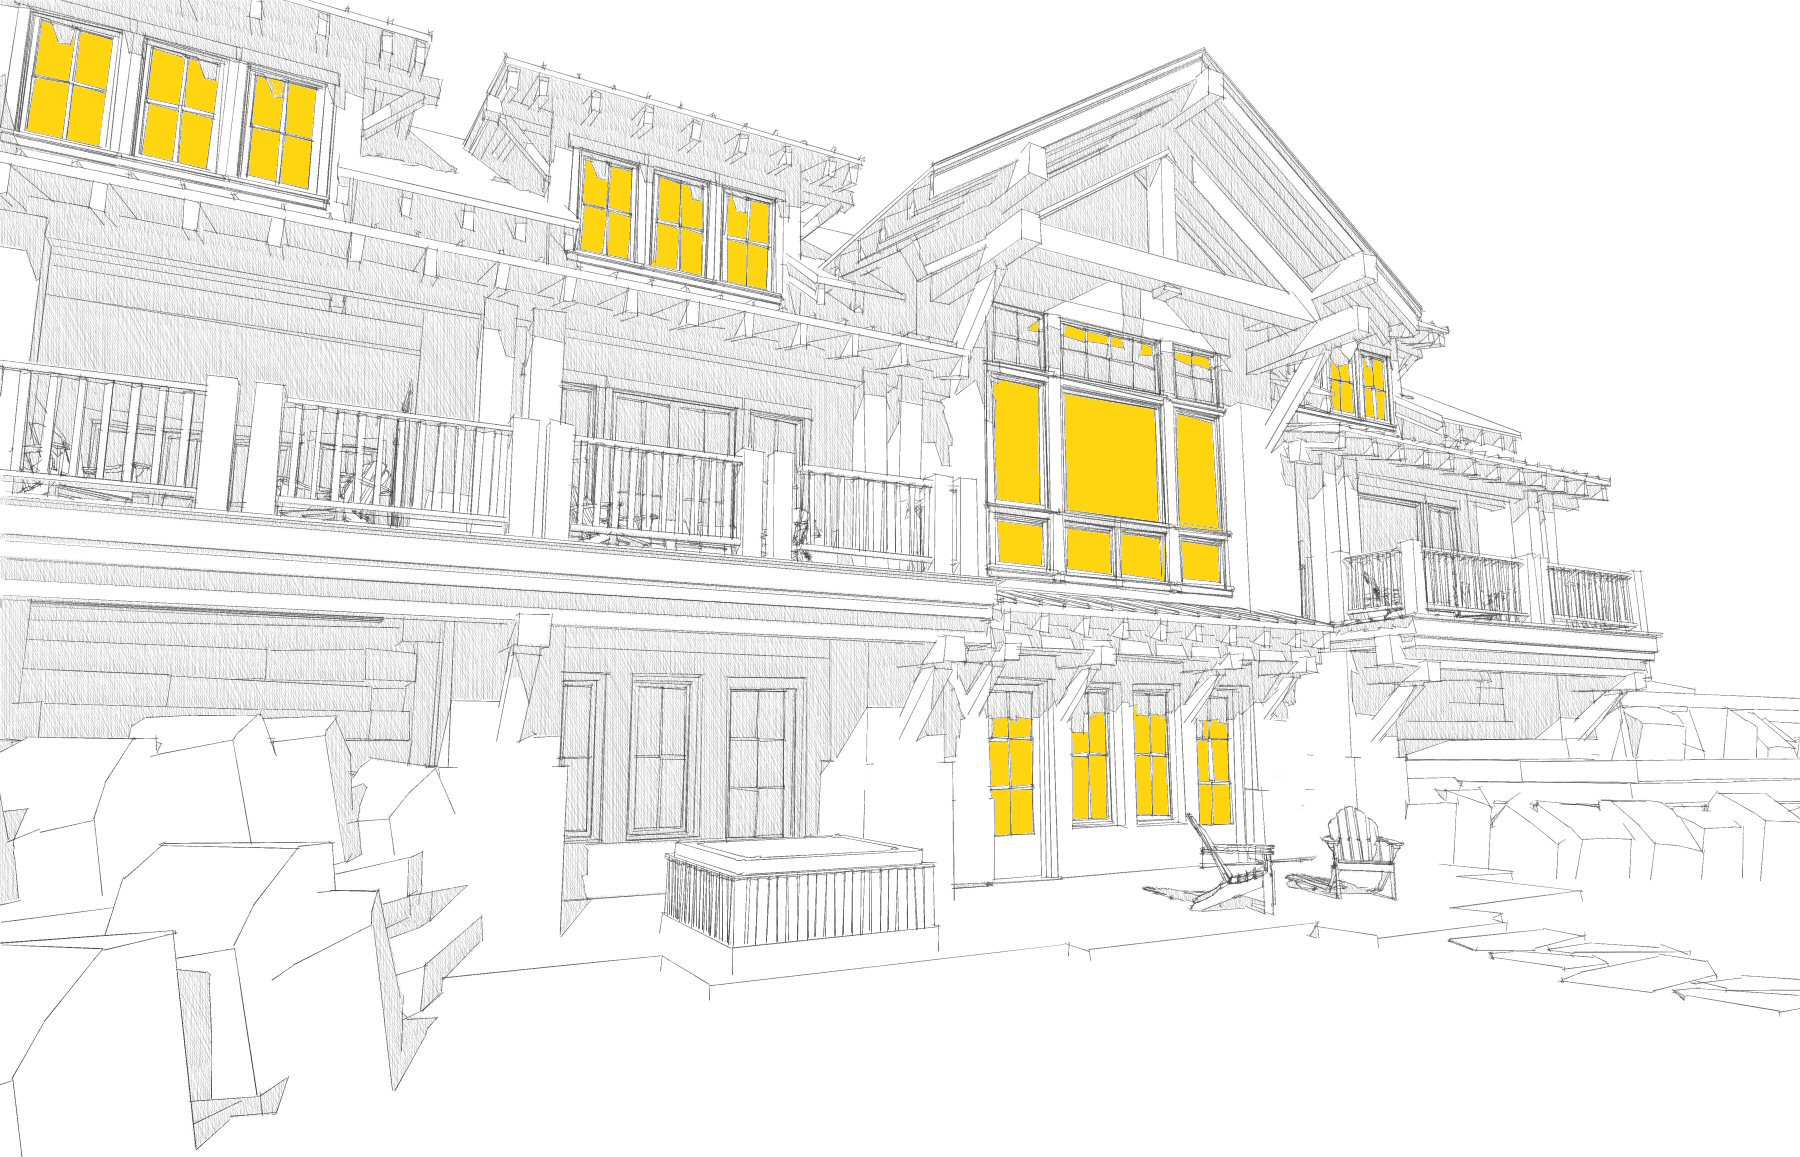 plan-west-design-firm-_-projects-in-process-633